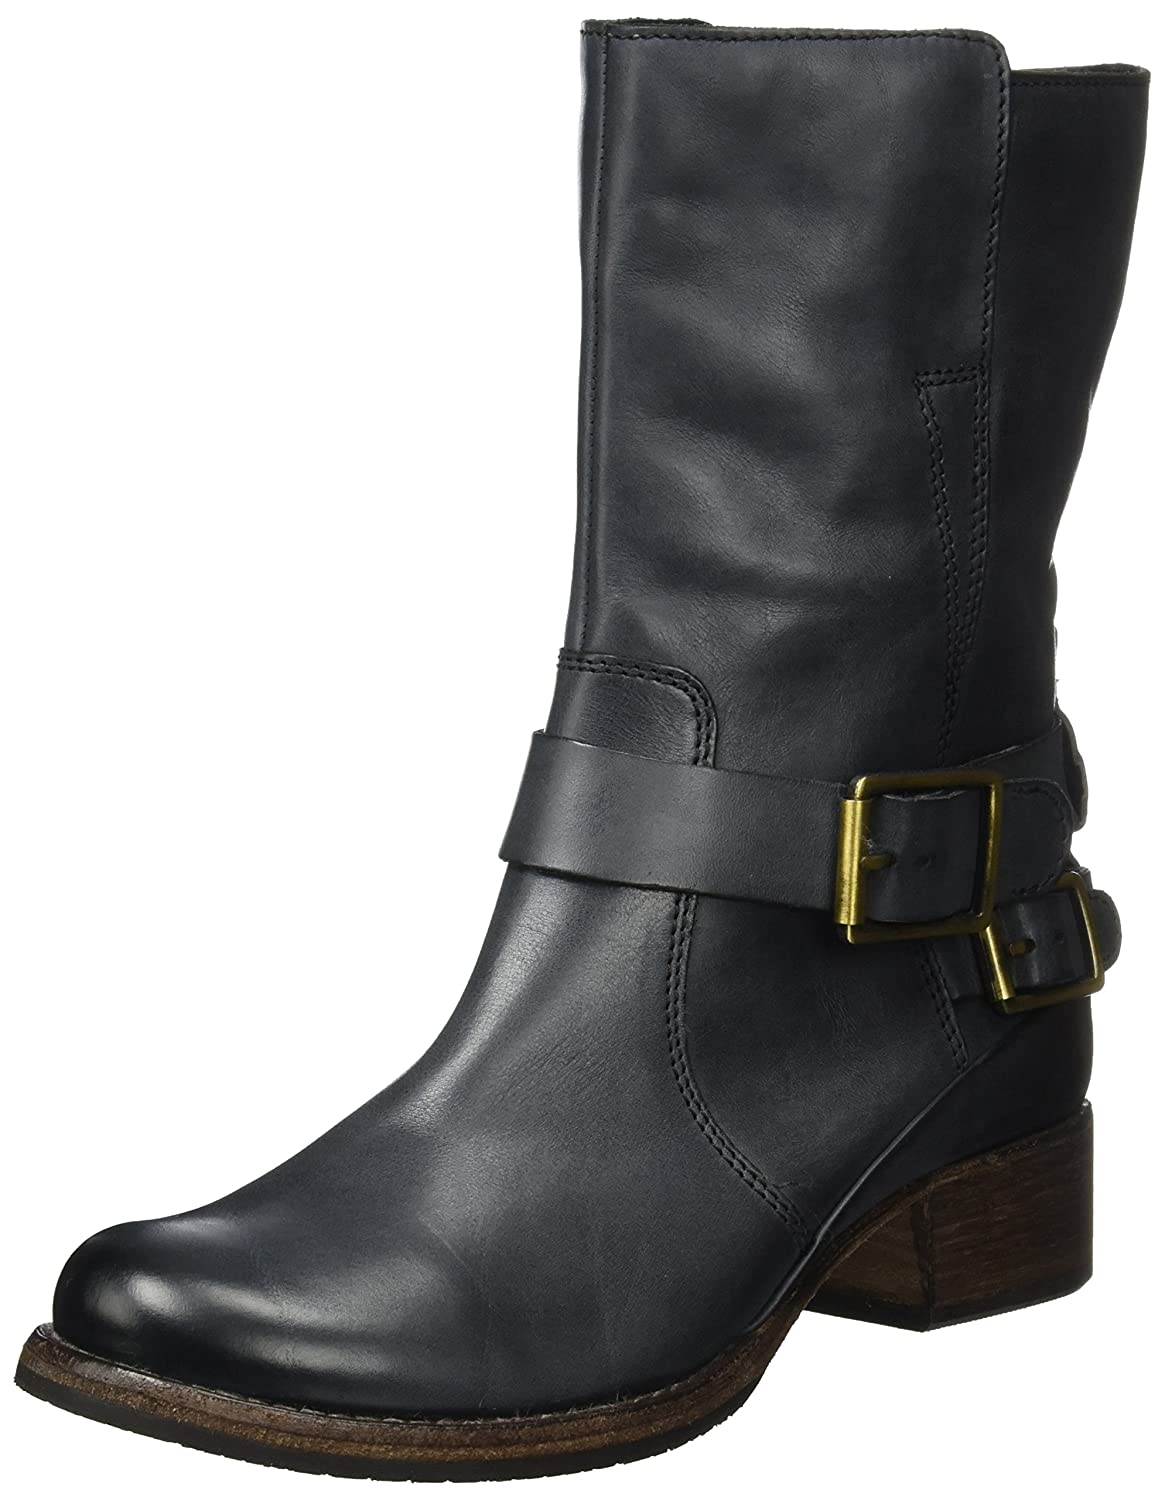 15da22f6b6c1 Clarks Women's Monica Soul Biker Boots: Amazon.co.uk: Shoes & Bags